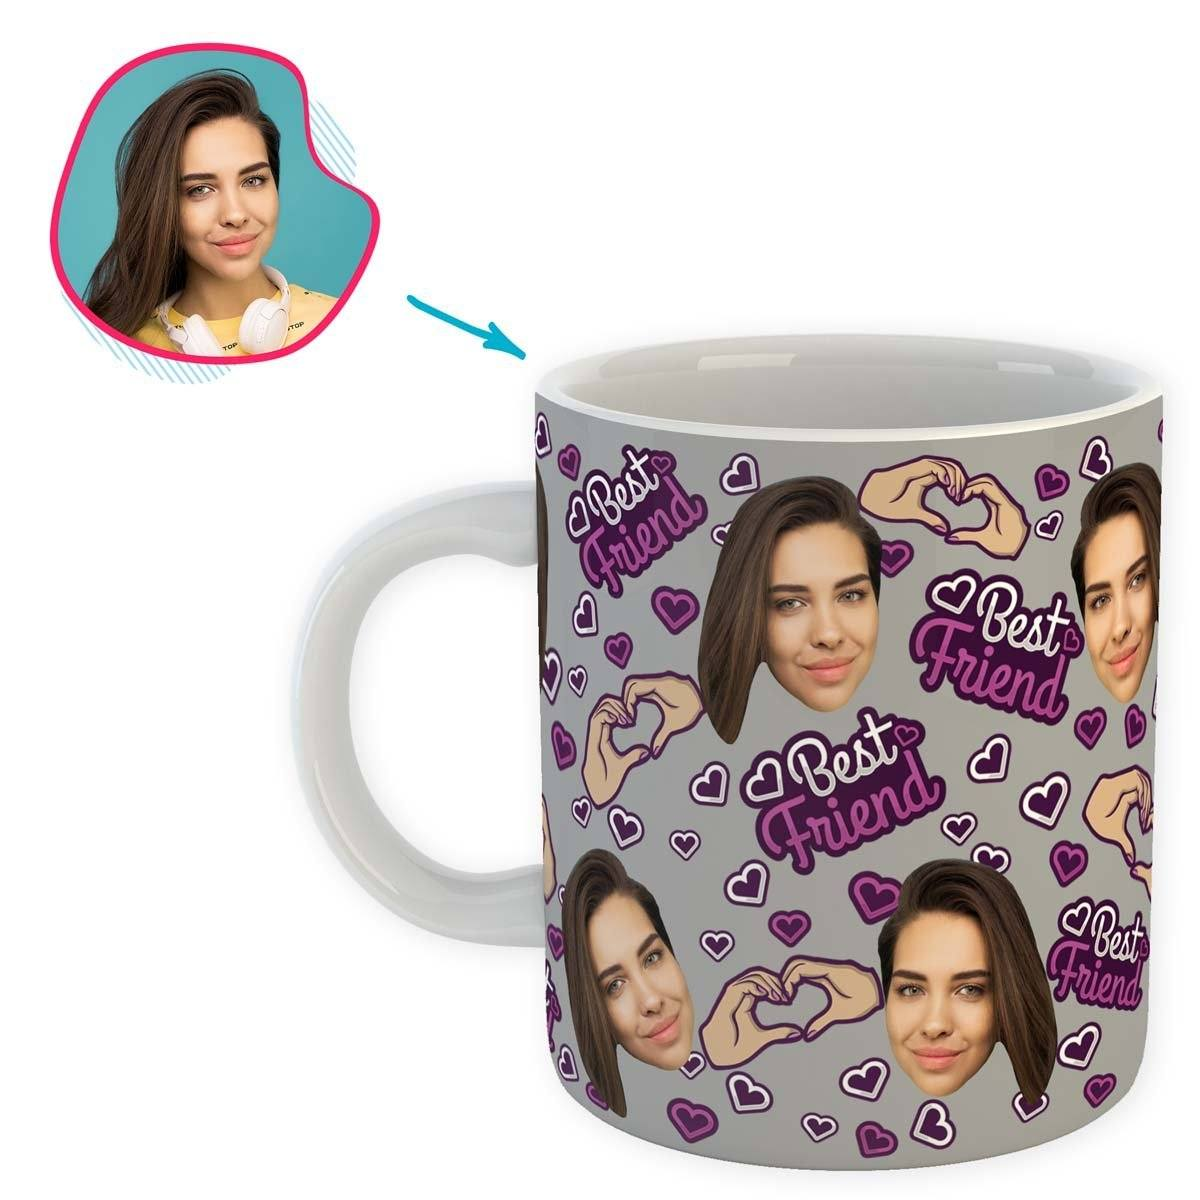 grey BFF for Her mug personalized with photo of face printed on it